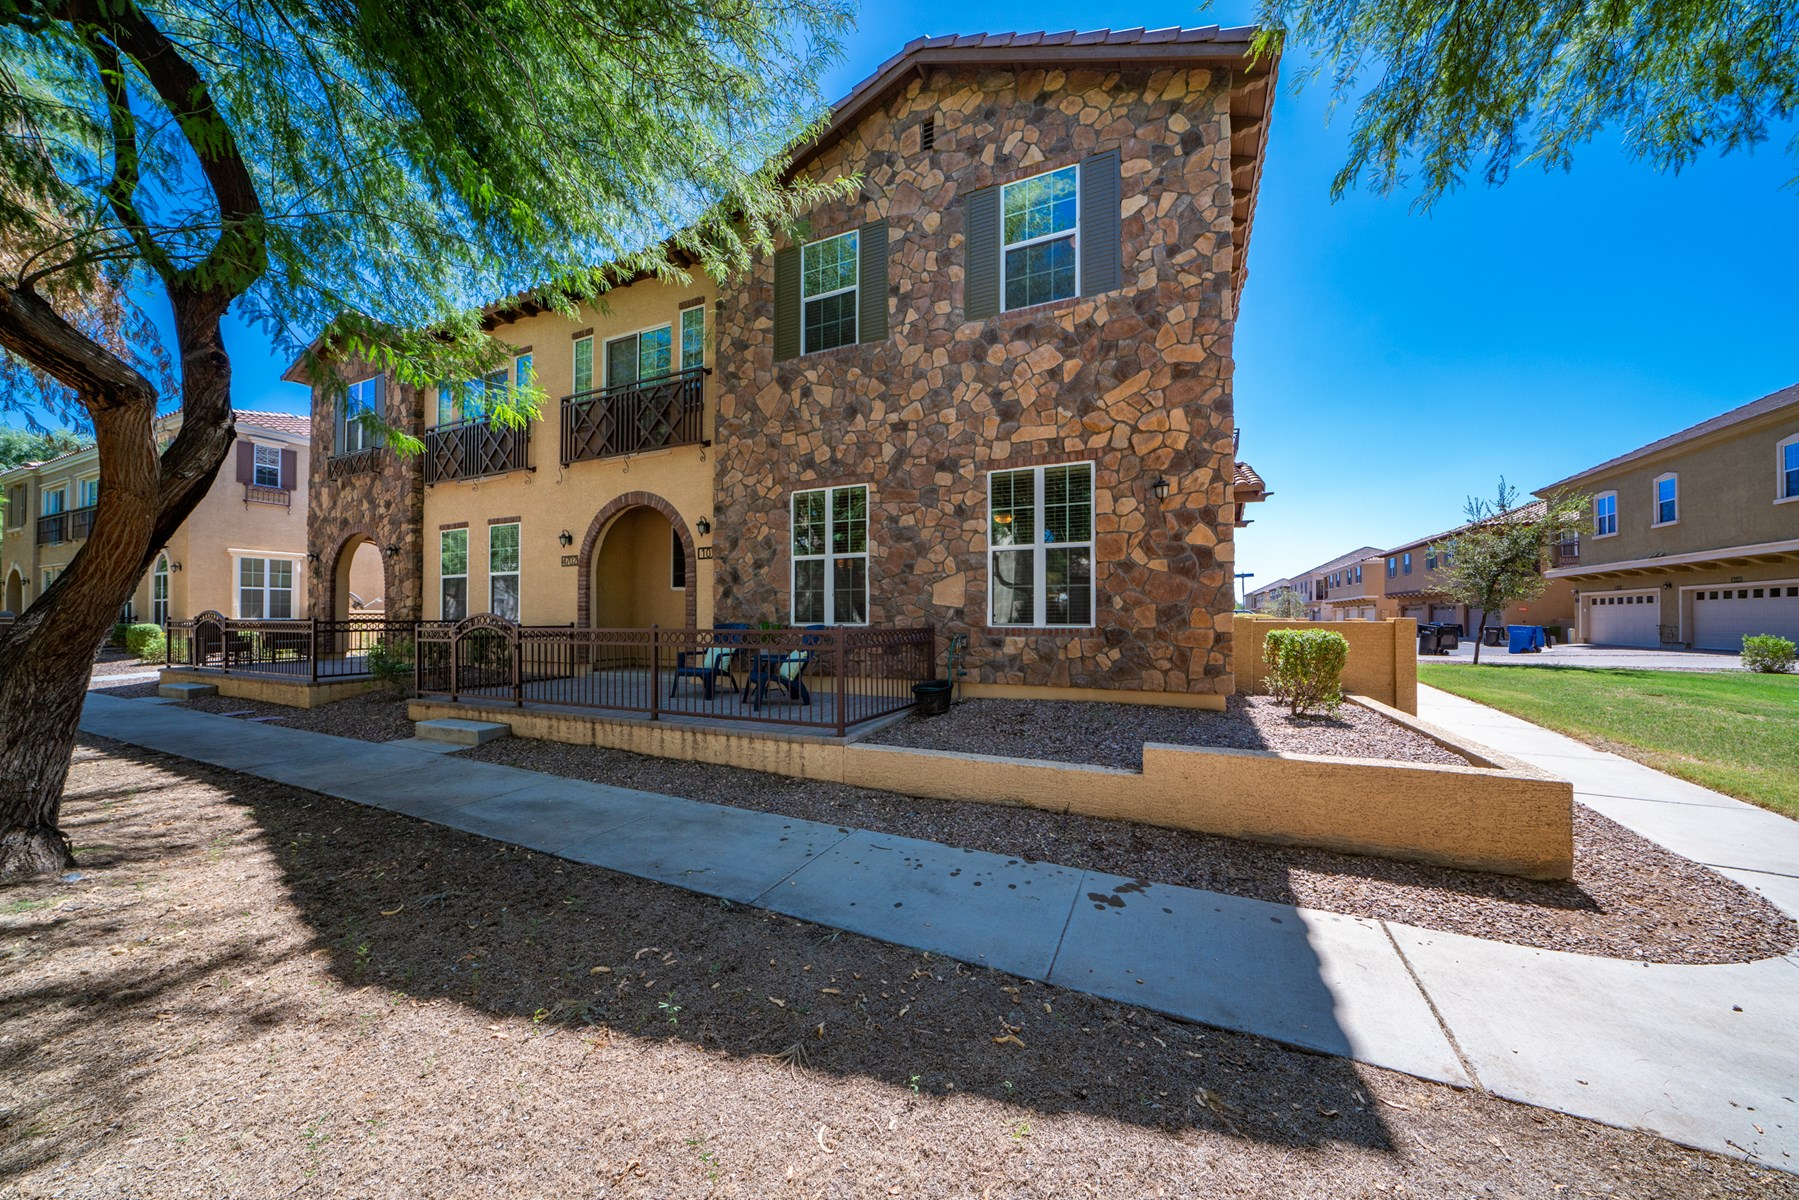 3 BED 2 BATH CONDO IN POWER RANCH COMMUNITY GILBERT AZ